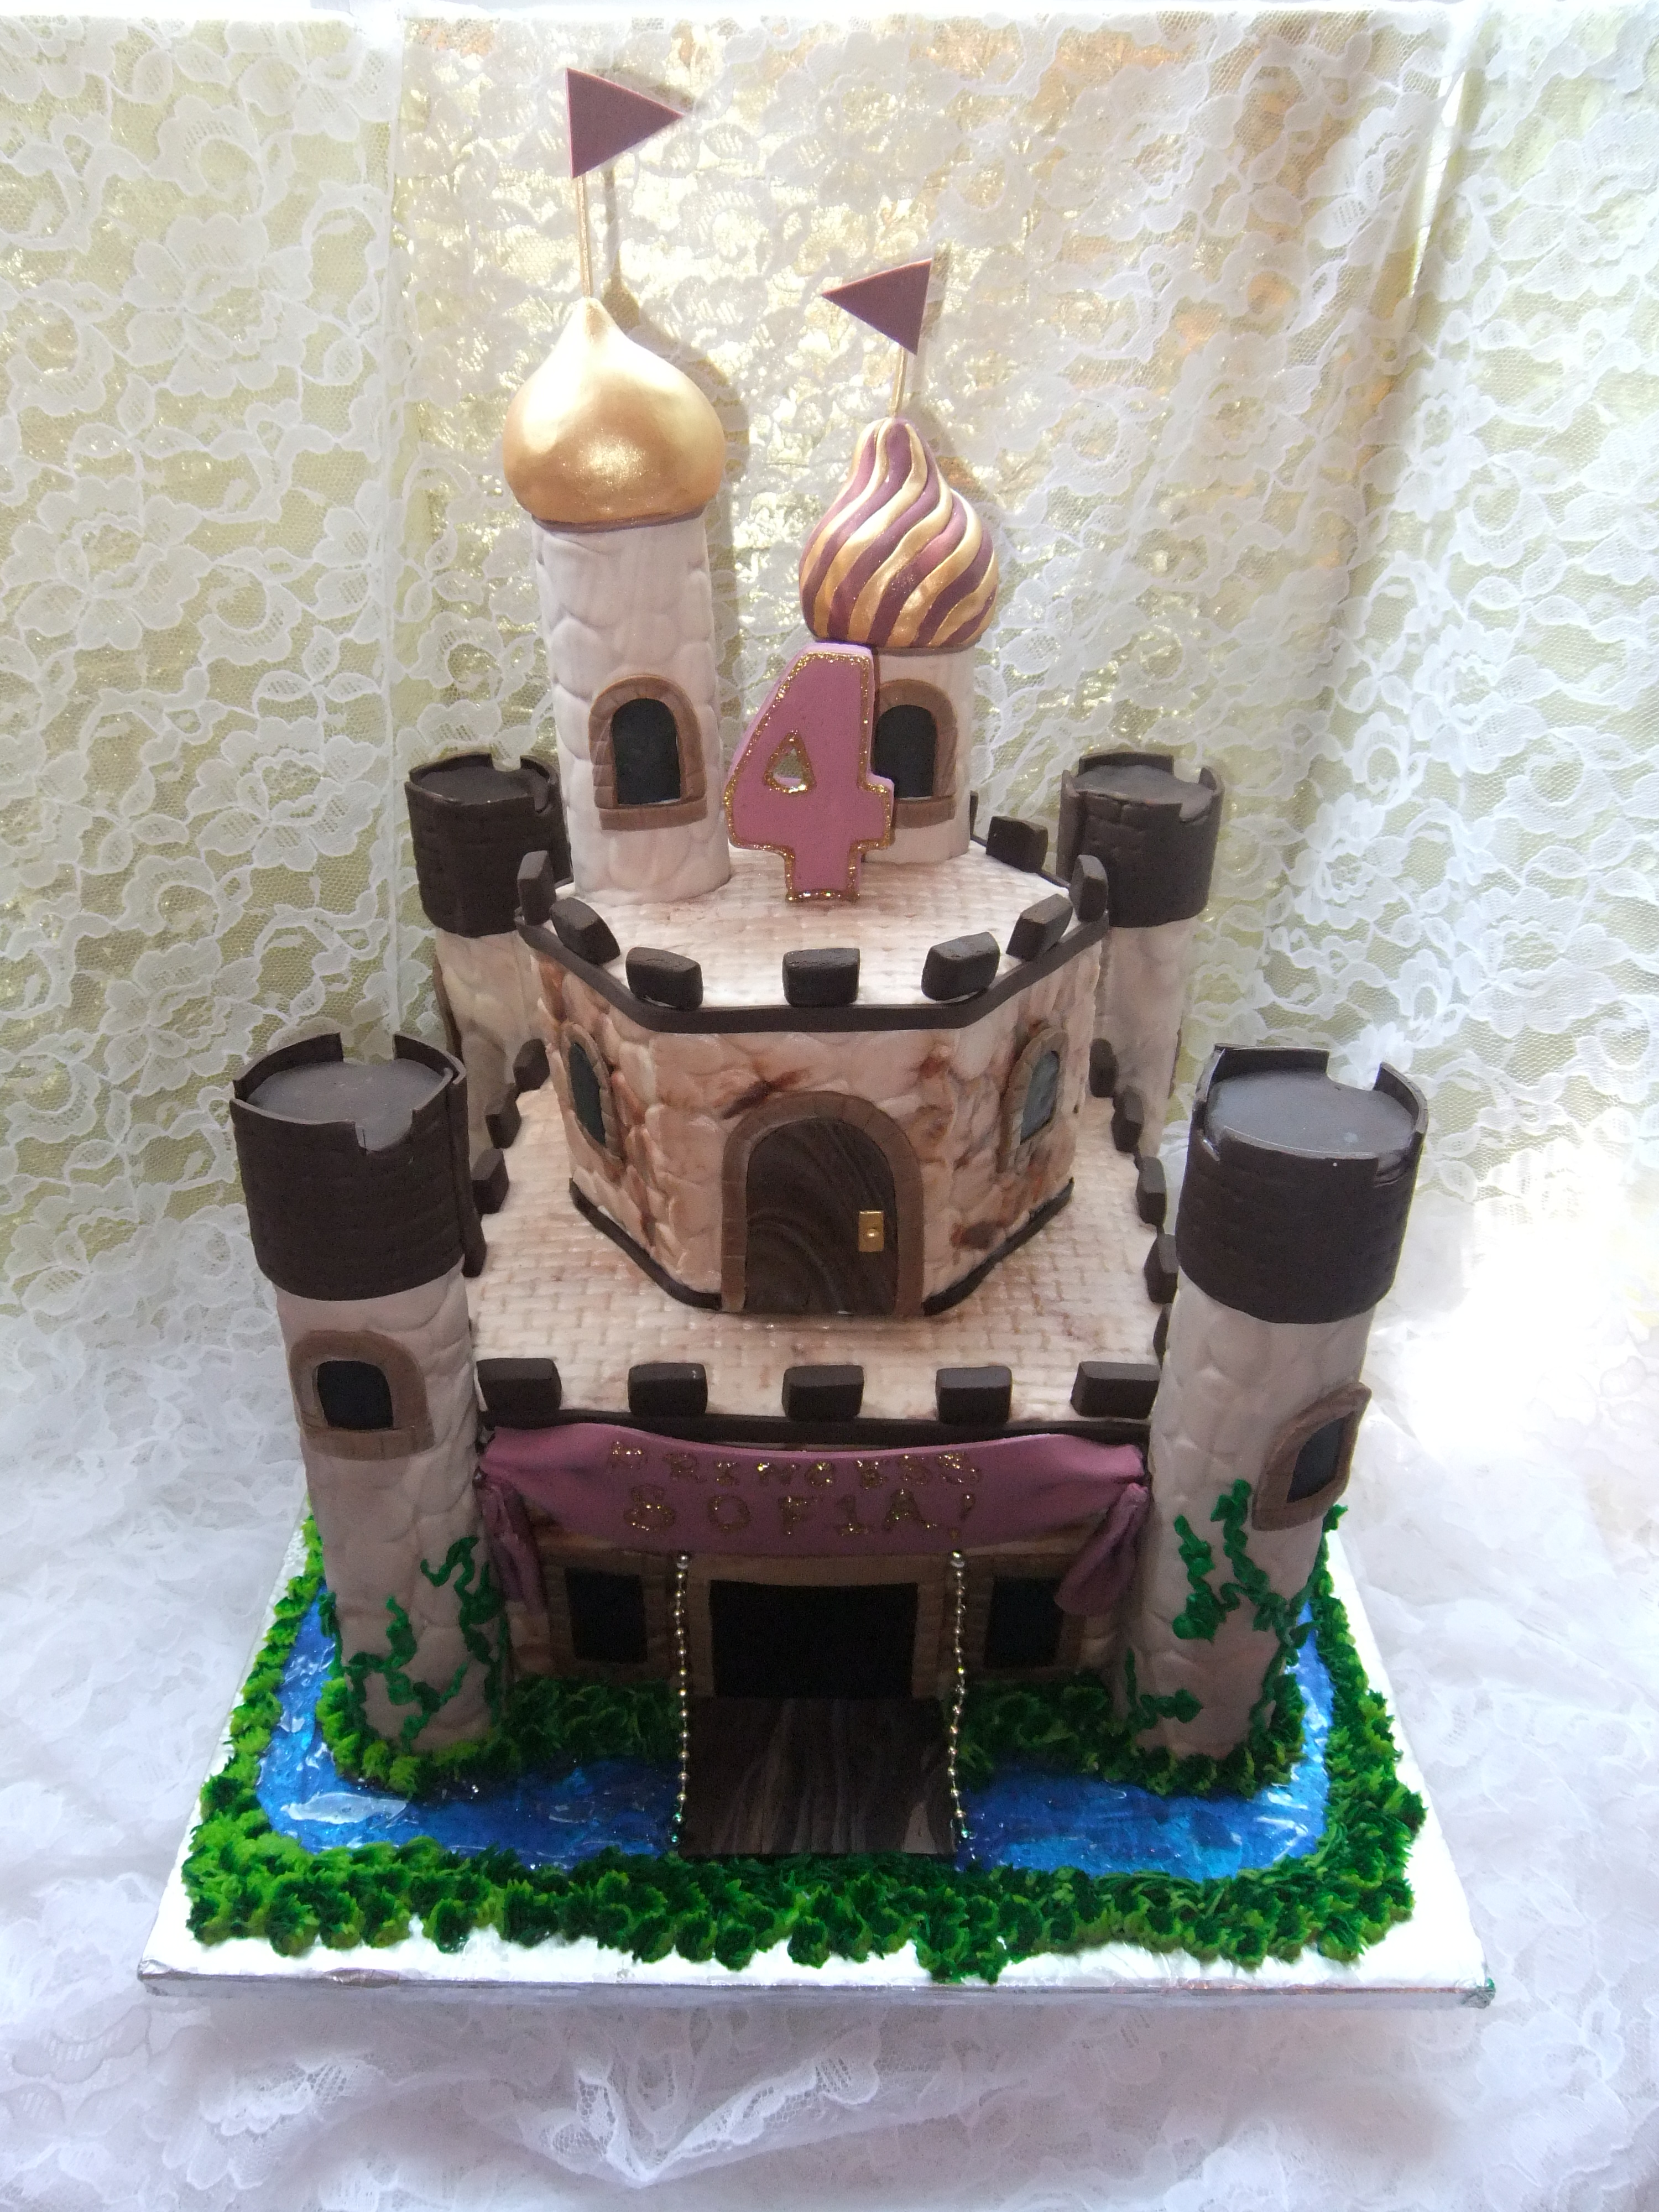 Fairytale castle- browns and beige